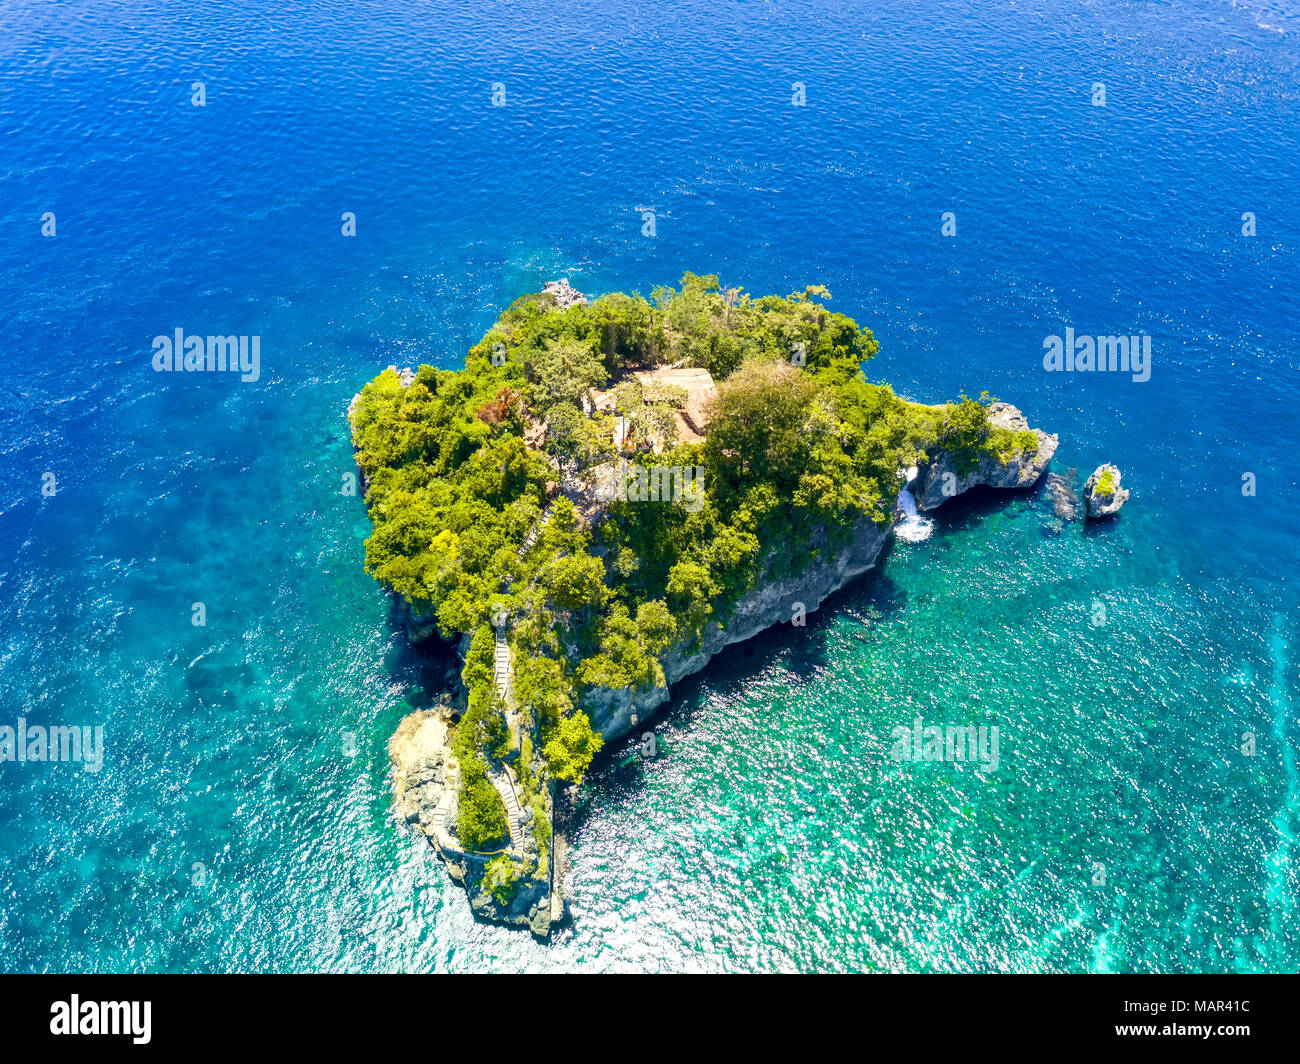 Indonesia. Emerald ocean water. A small rocky island, overgrown with jungles. Stairs from the water and a few huts between the trees. Aerial view - Stock Image